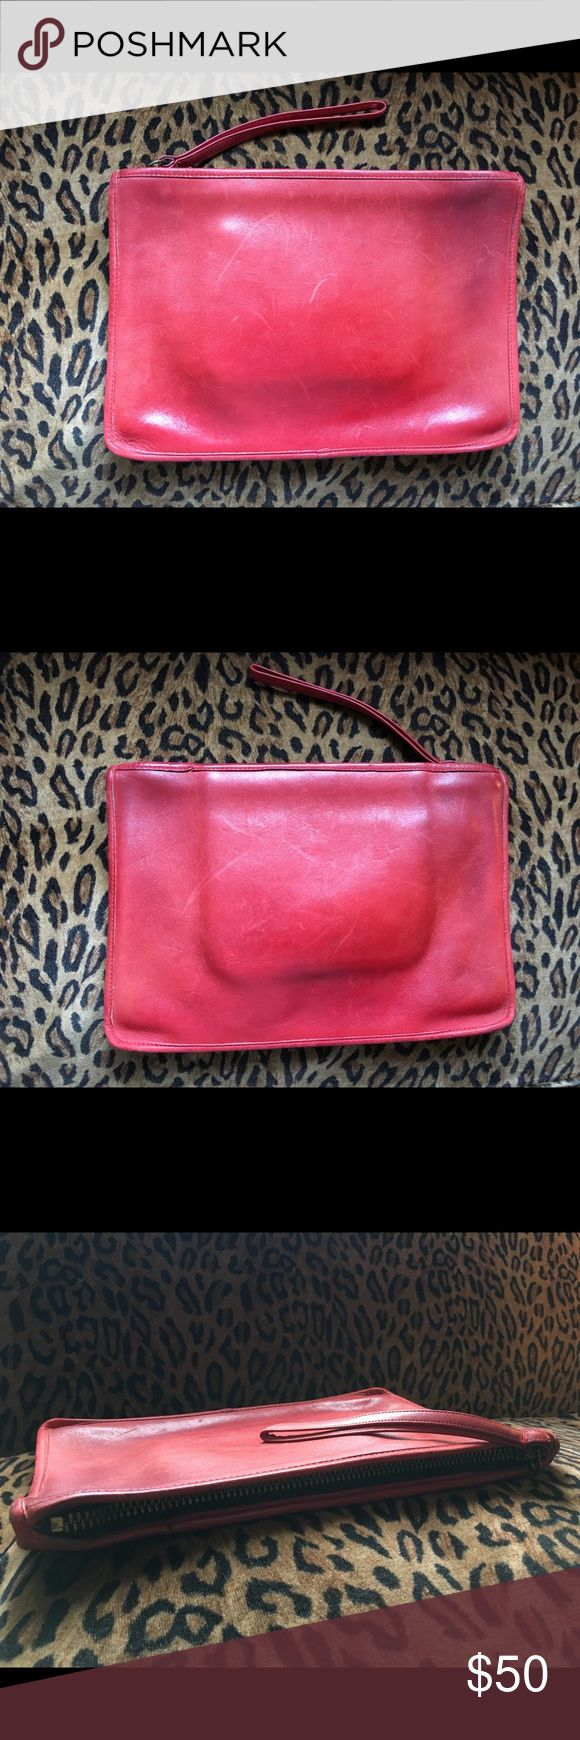 Vintage Red Coach Clutch Red leather Coach clutch, in good vintage condition. Coach Bags Clutches & Wristlets